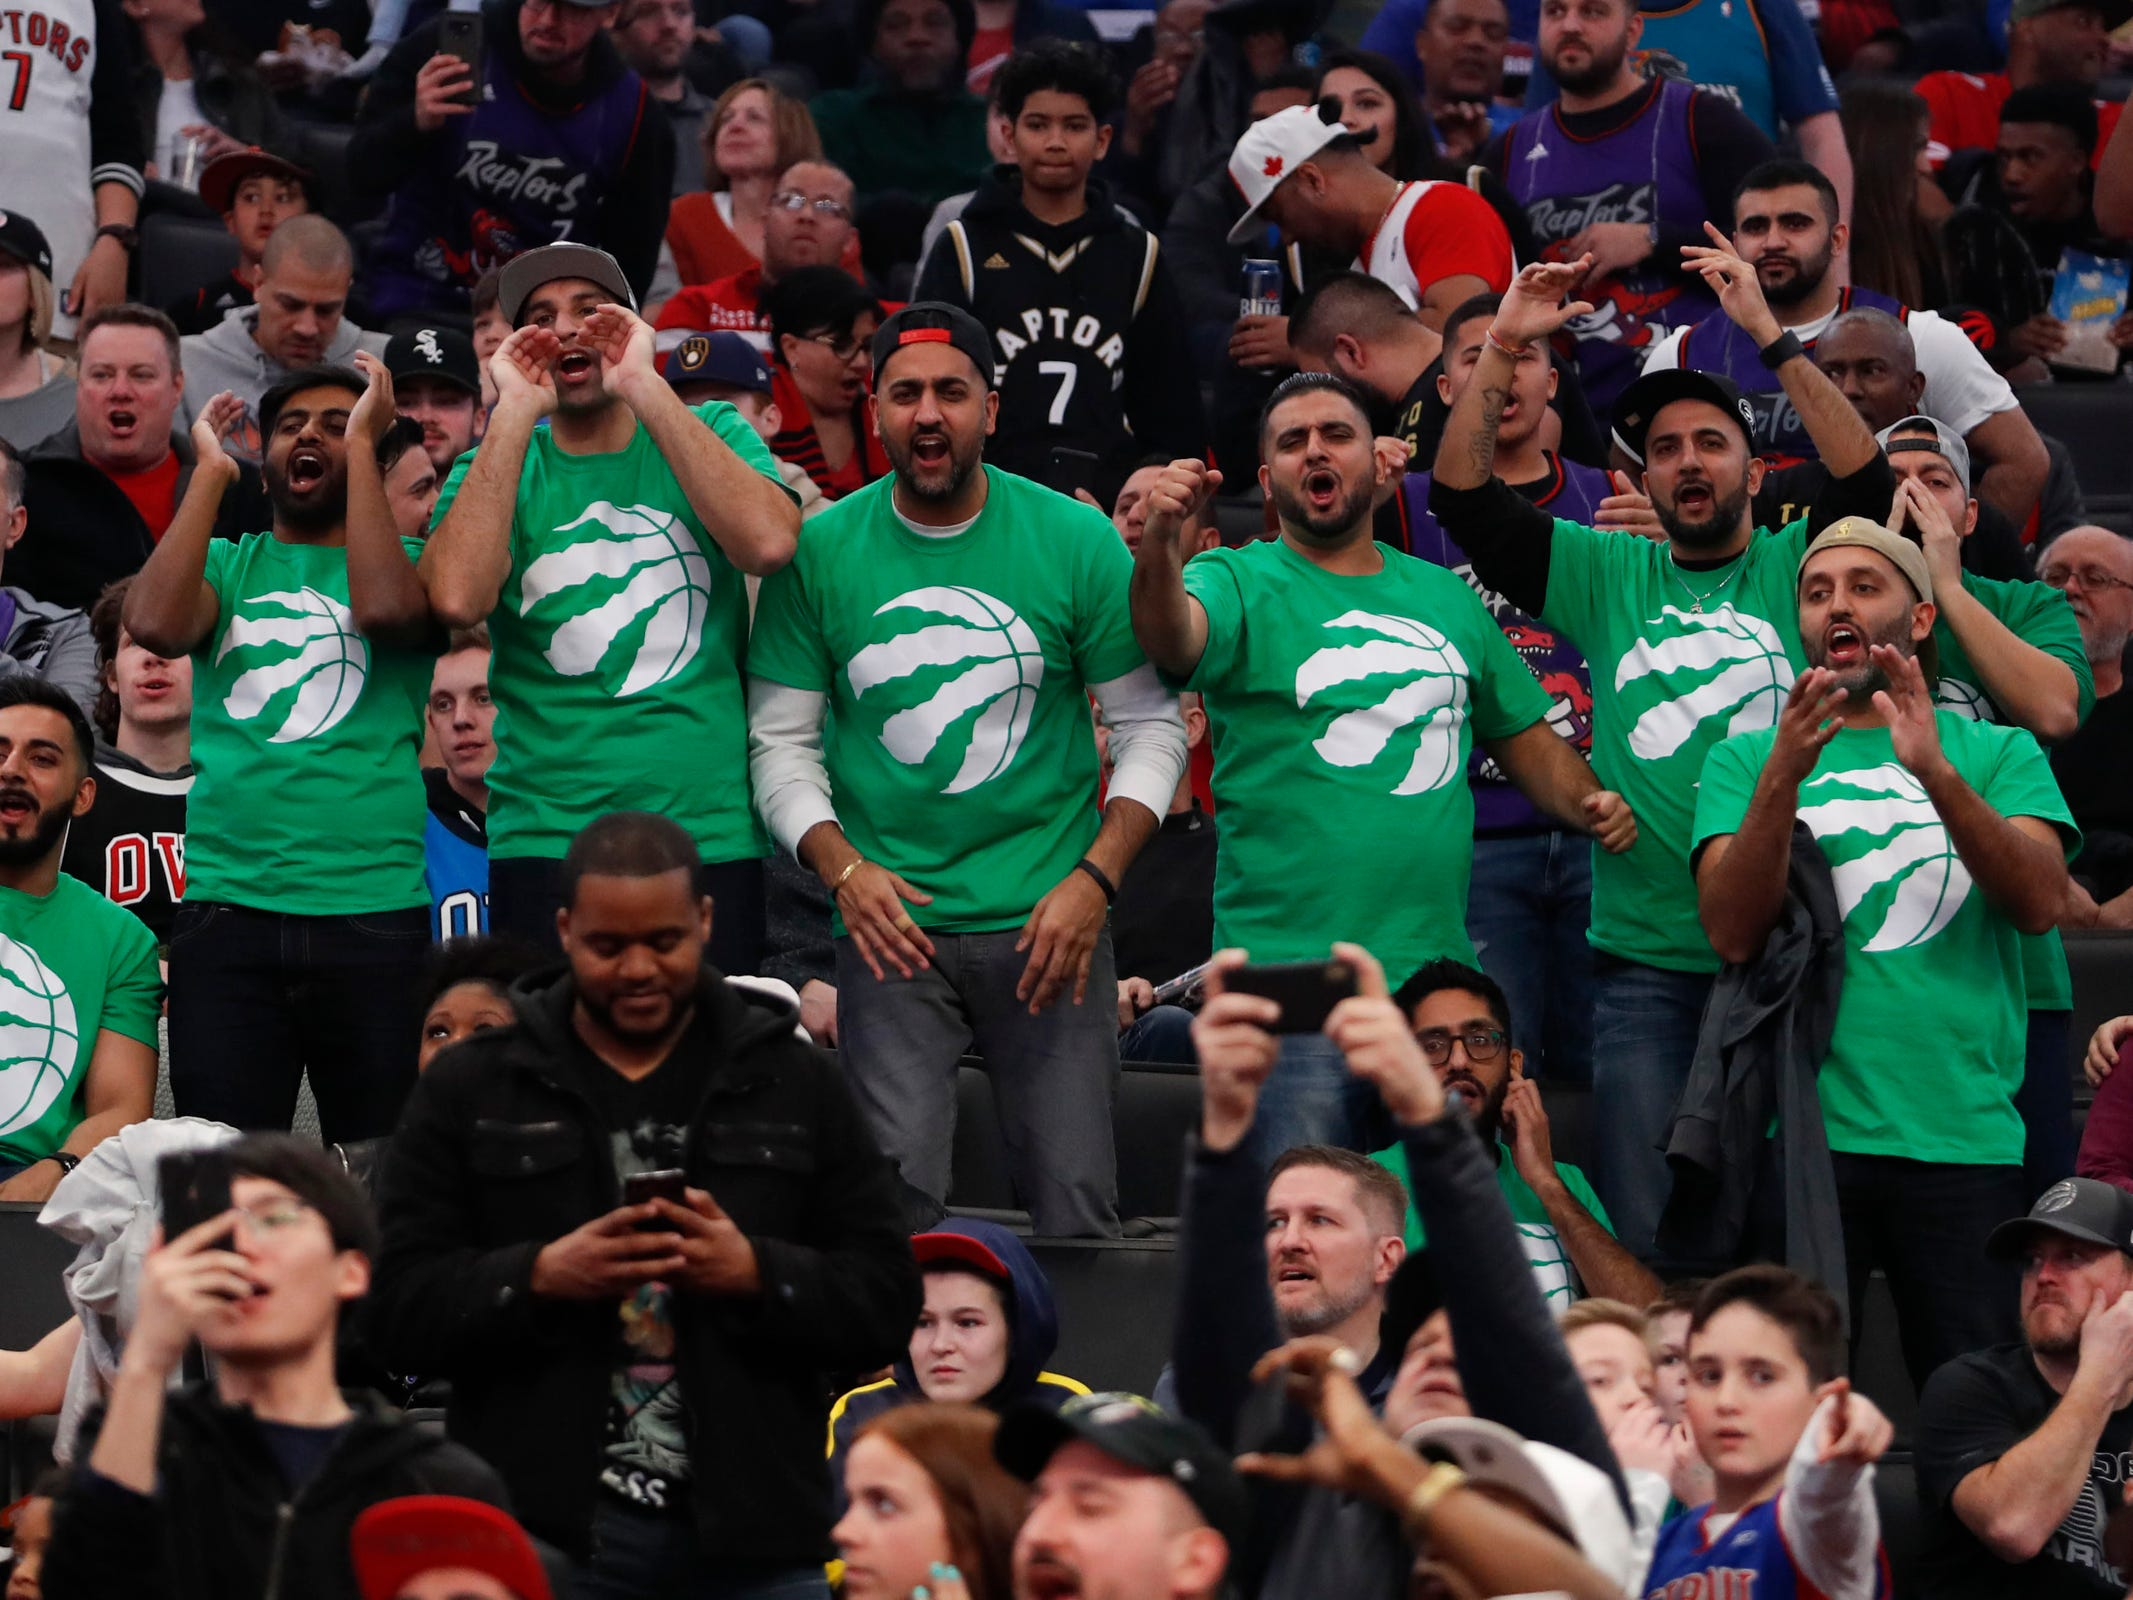 Toronto Raptors fans cheer in green shirts honoring St. Patrick's Day during the first quarter against the Detroit Pistons at Little Caesars Arena, Sunday, March 17, 2019.